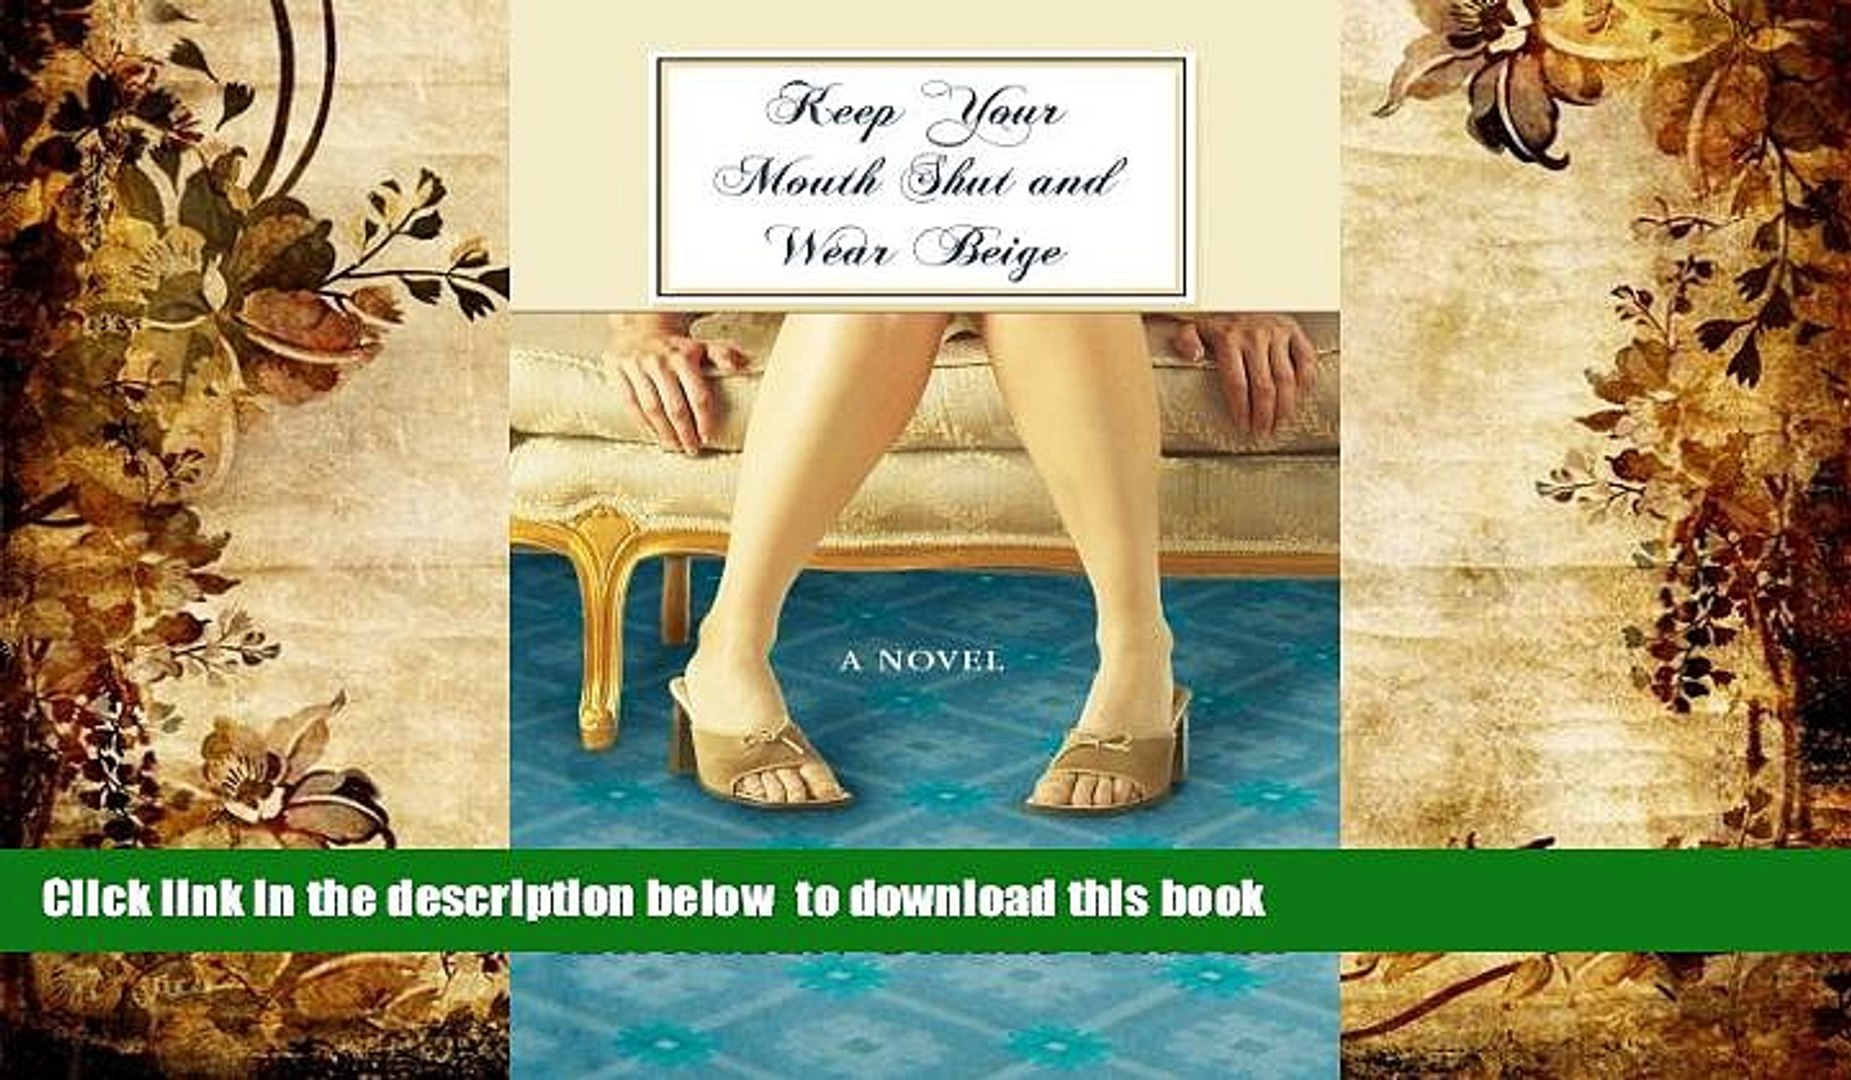 PDF [DOWNLOAD] Keep Your Mouth Shut and Wear Beige (Premier Fiction) BOOK ONLINE